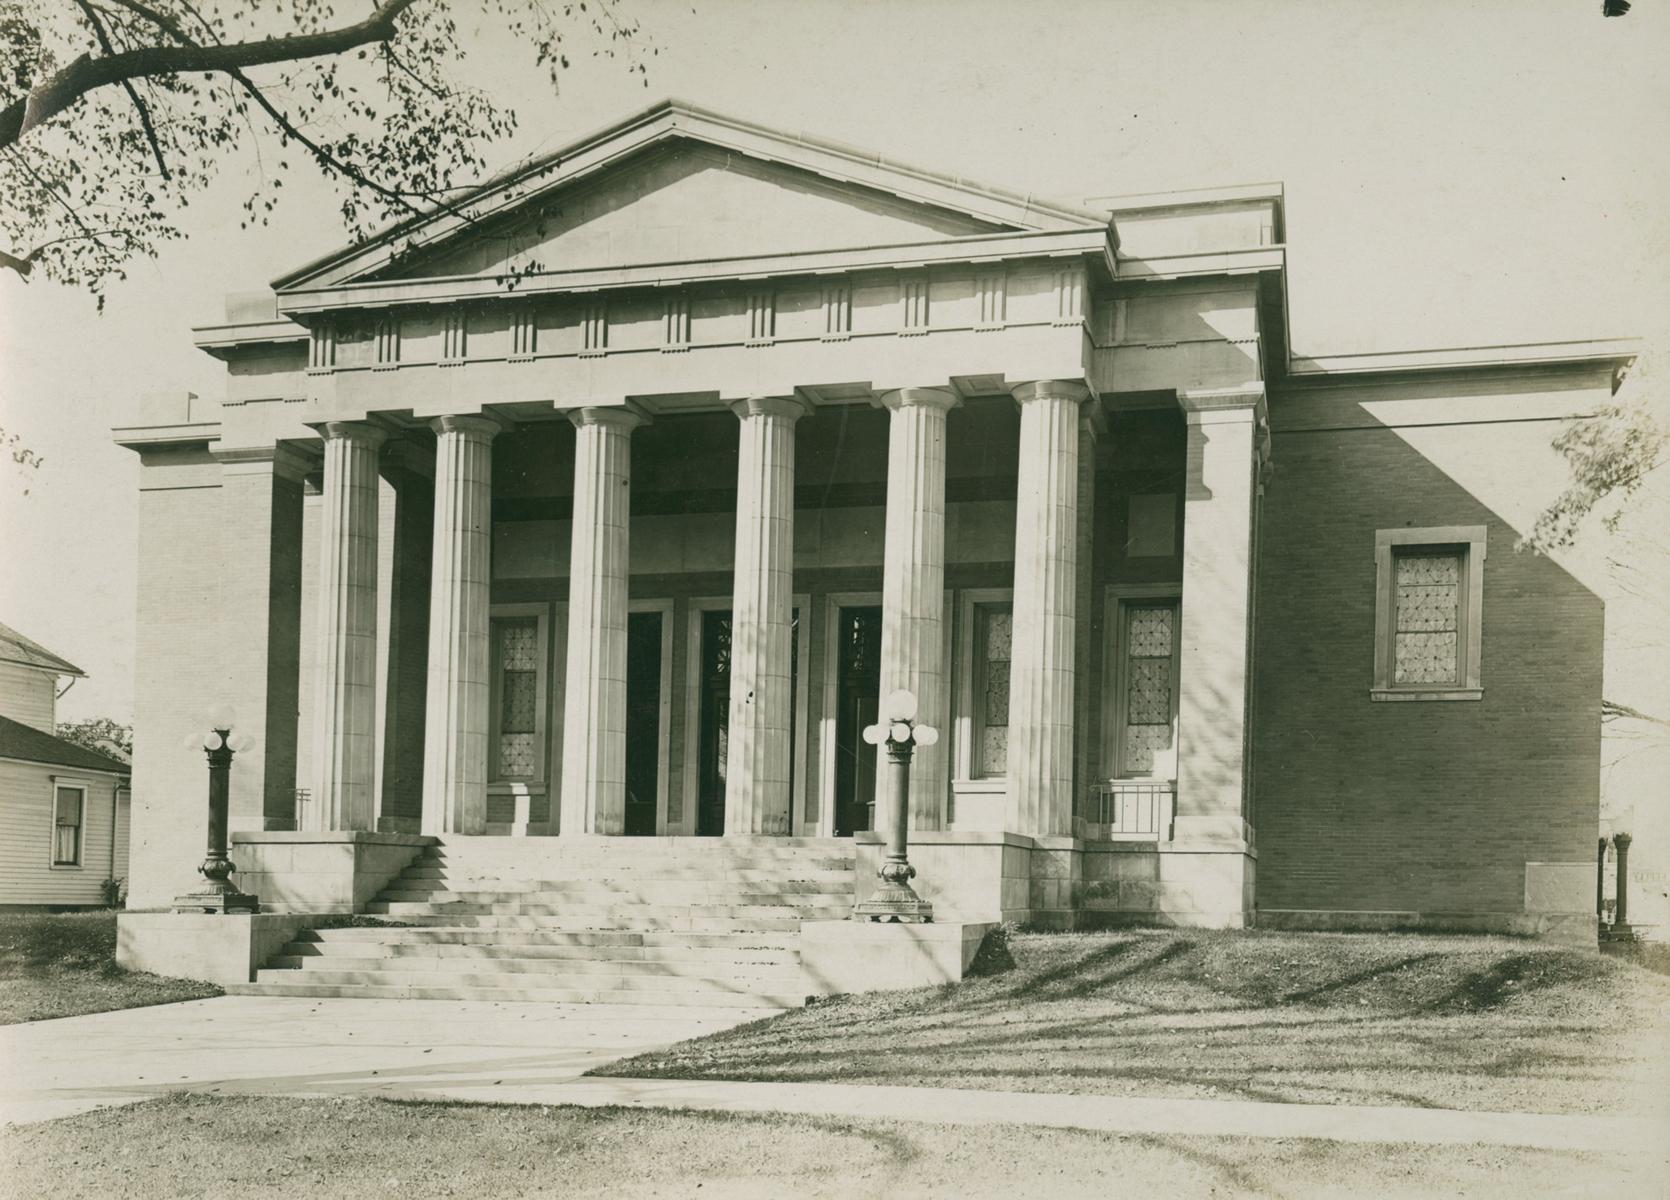 First Church of Christ, Scientist, Evanston, Illinois, early 20th century